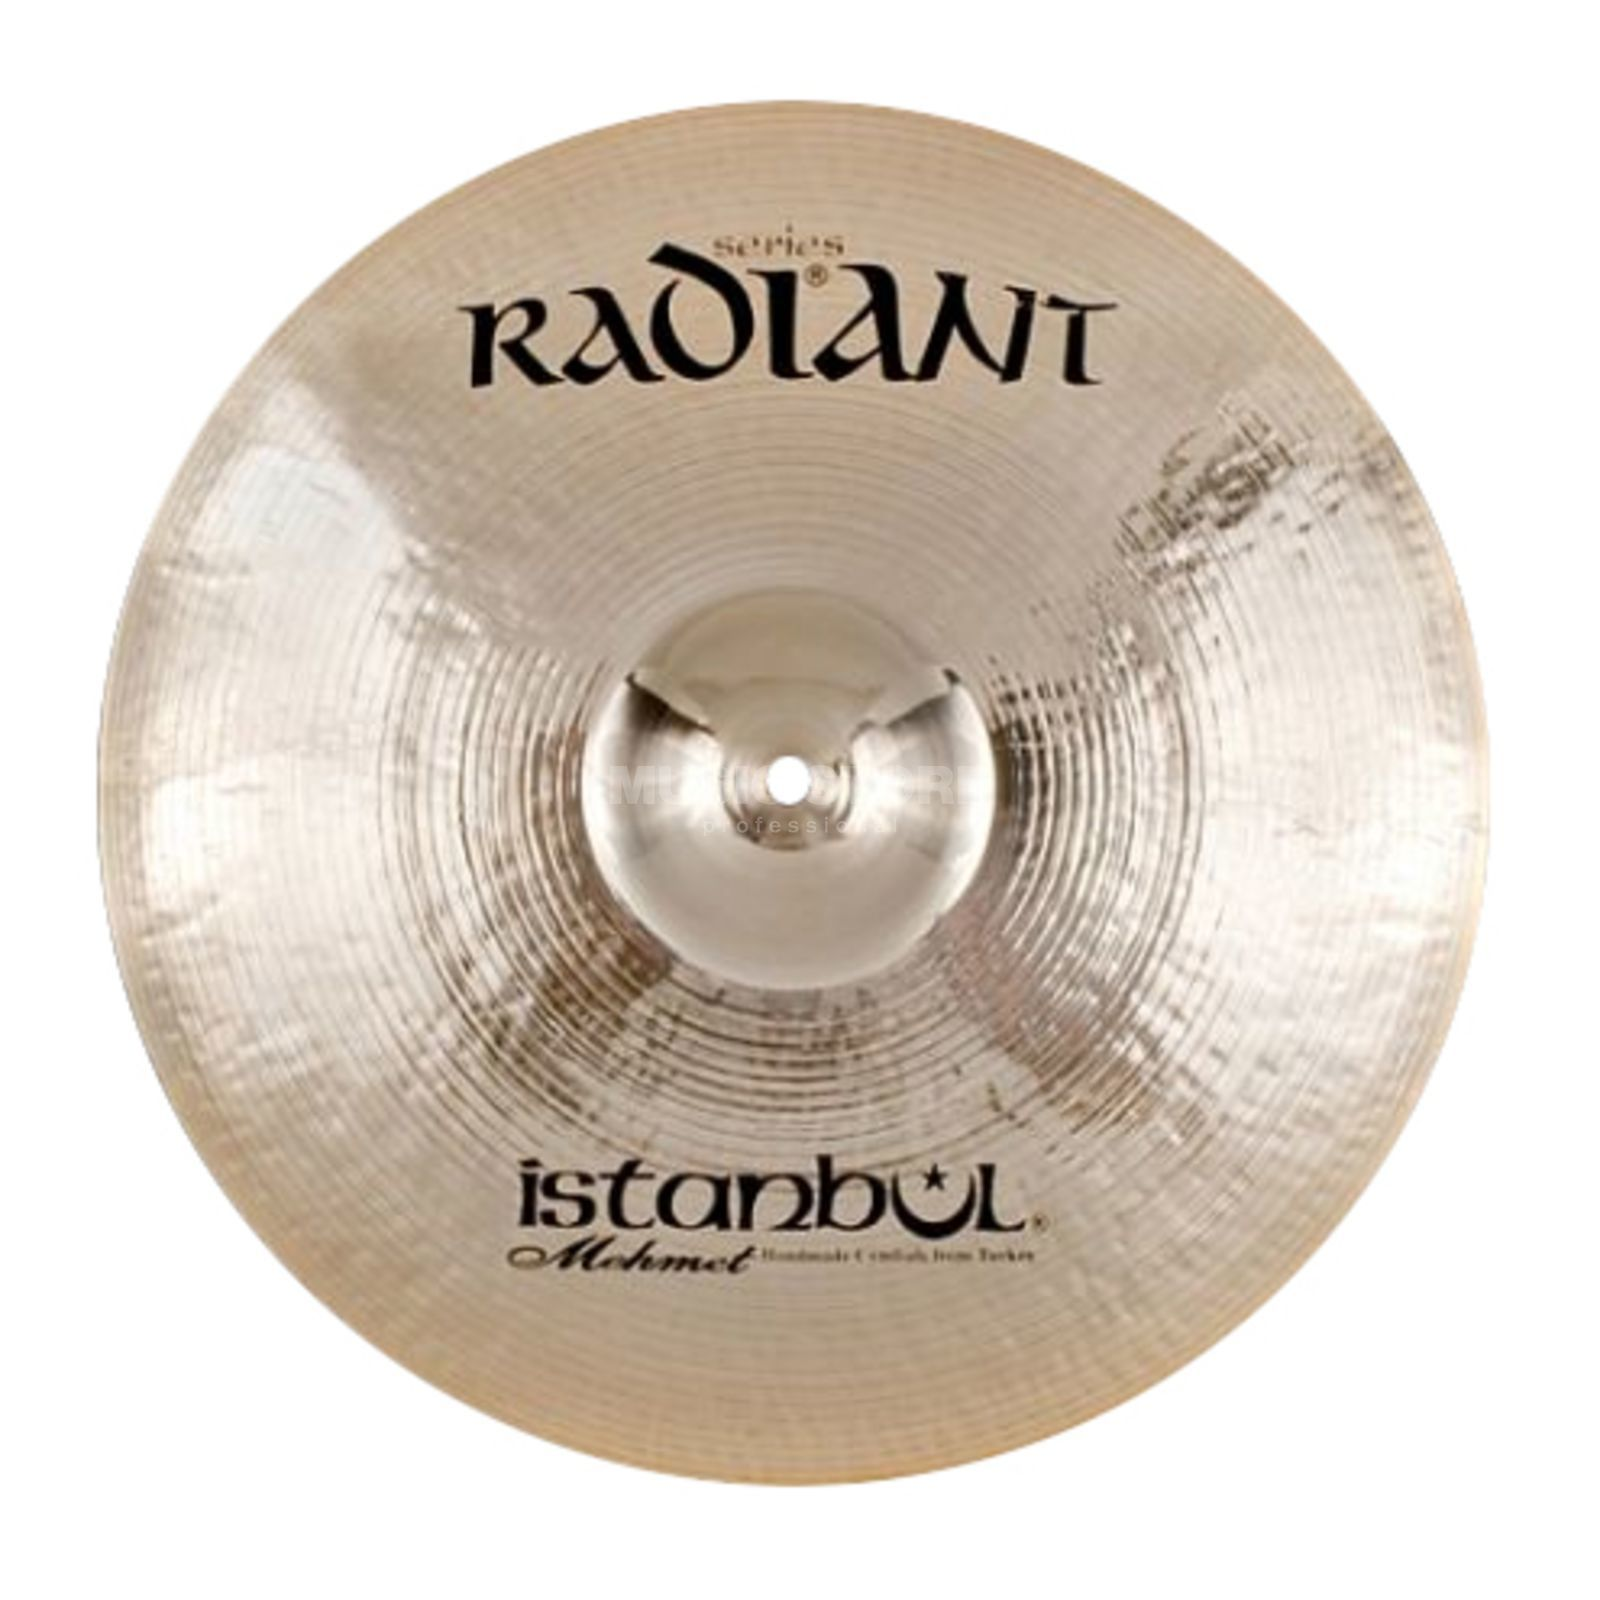 "Istanbul Radiant Medium Crash 16"", R-CM17 Produktbillede"